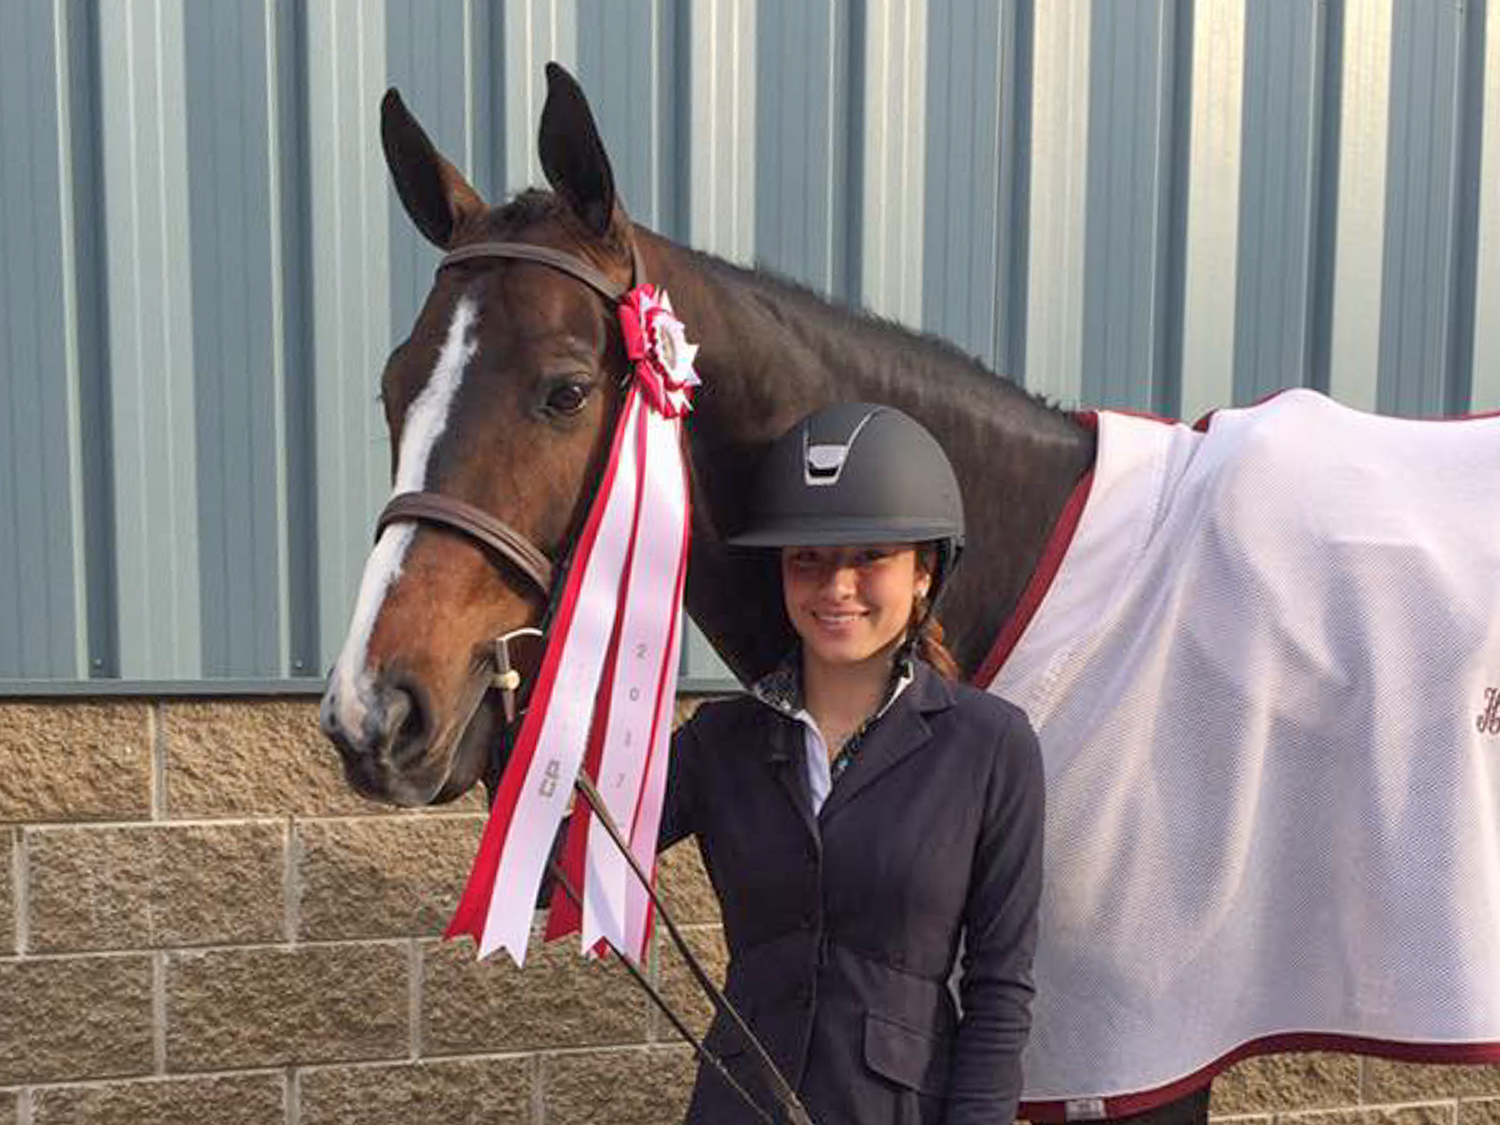 Thea Bitar and LPF Woodford at the National Horse Show